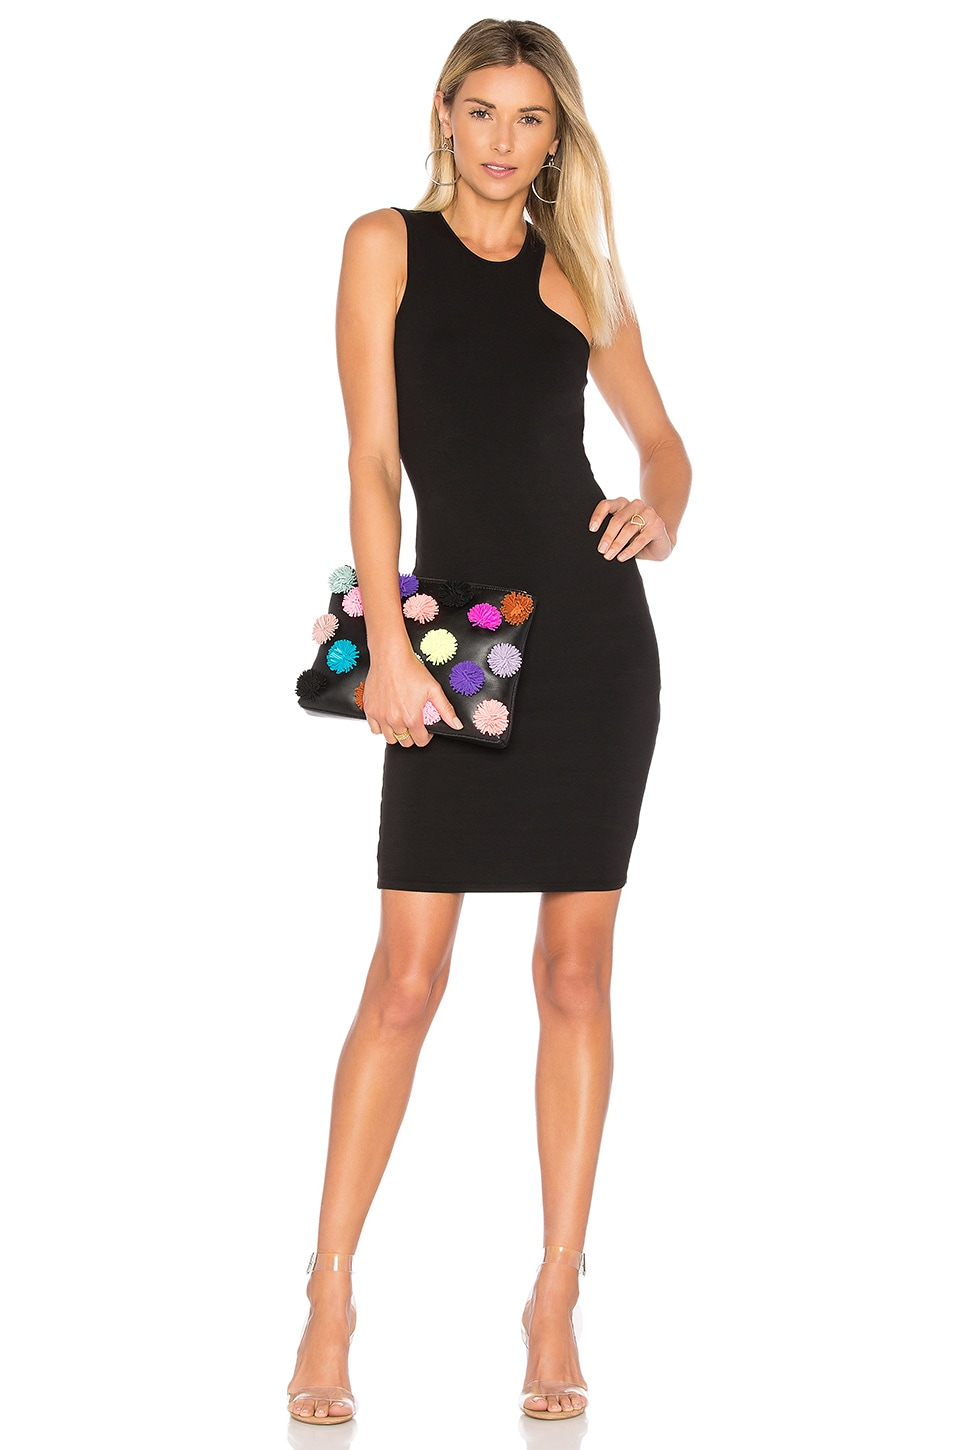 LA Made Sarah Bodycon Dress in Black